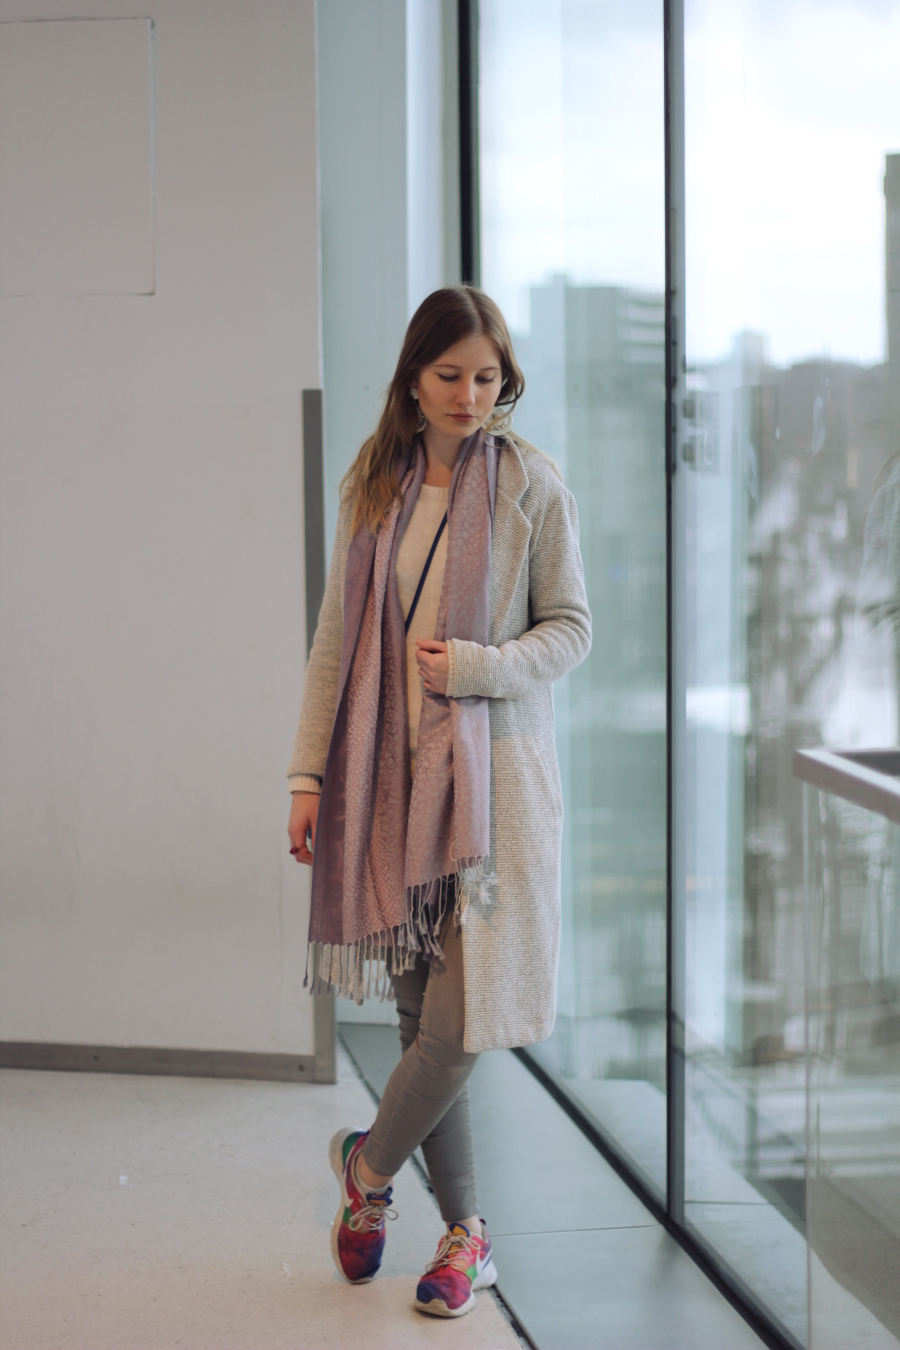 outfit zeil frankfurt city on top view sky nike urban outfitters zara new look blogger fashion